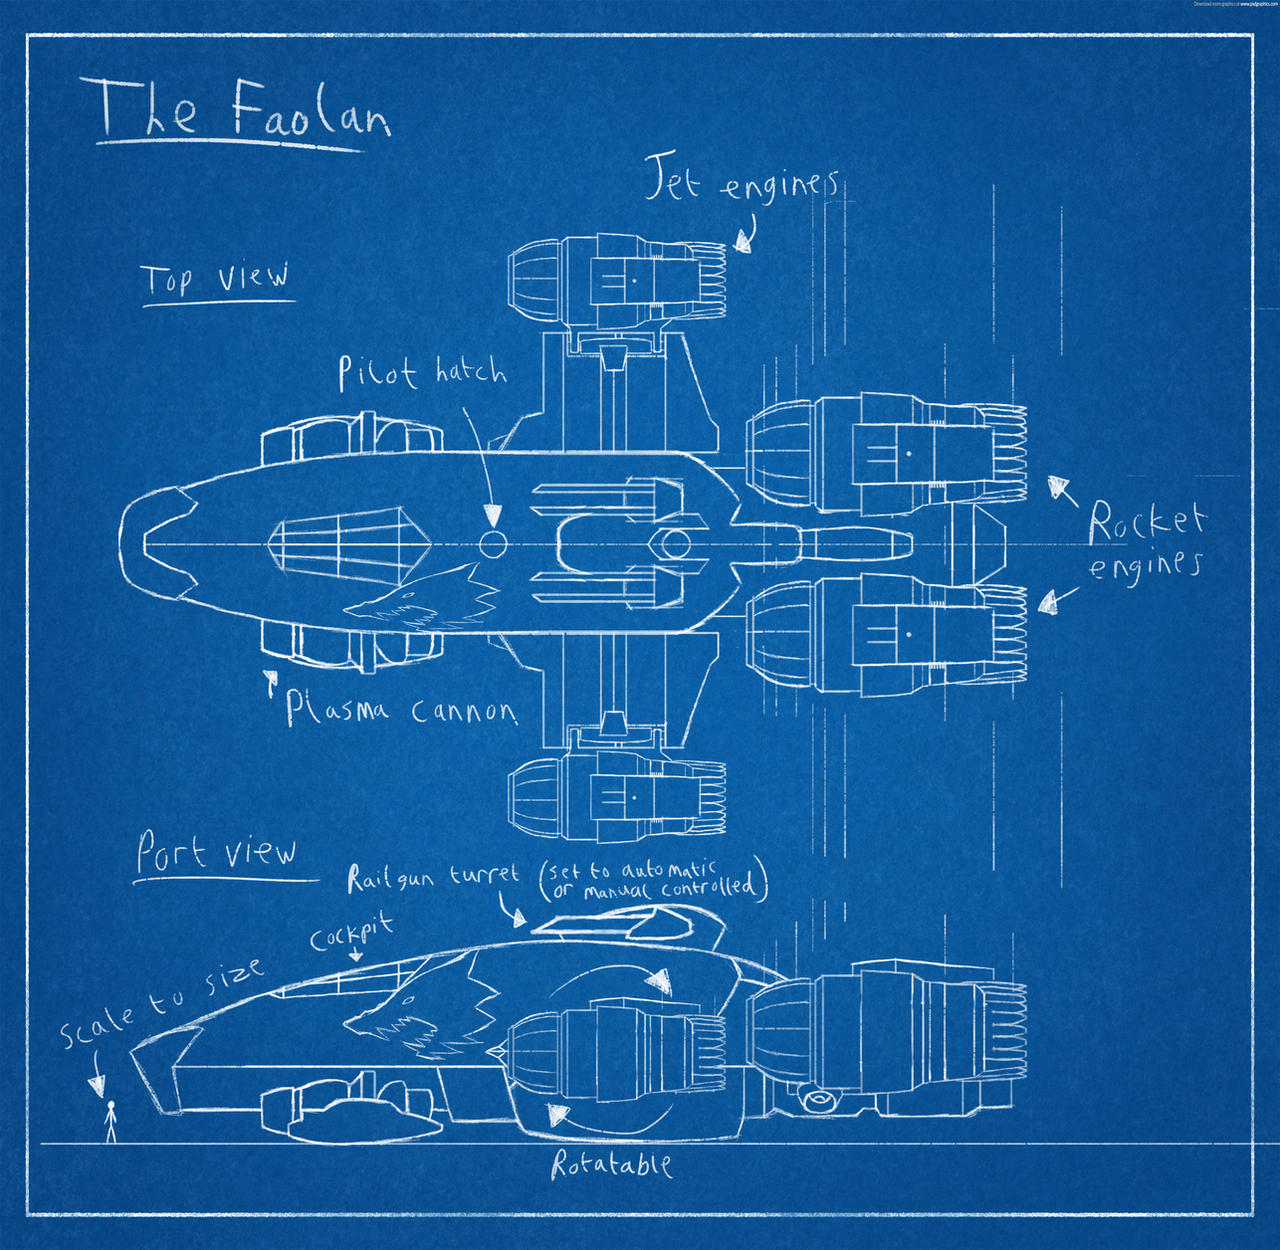 Spaceship blueprint the faolan by harveygall on deviantart spaceship blueprint the faolan by harveygall malvernweather Image collections